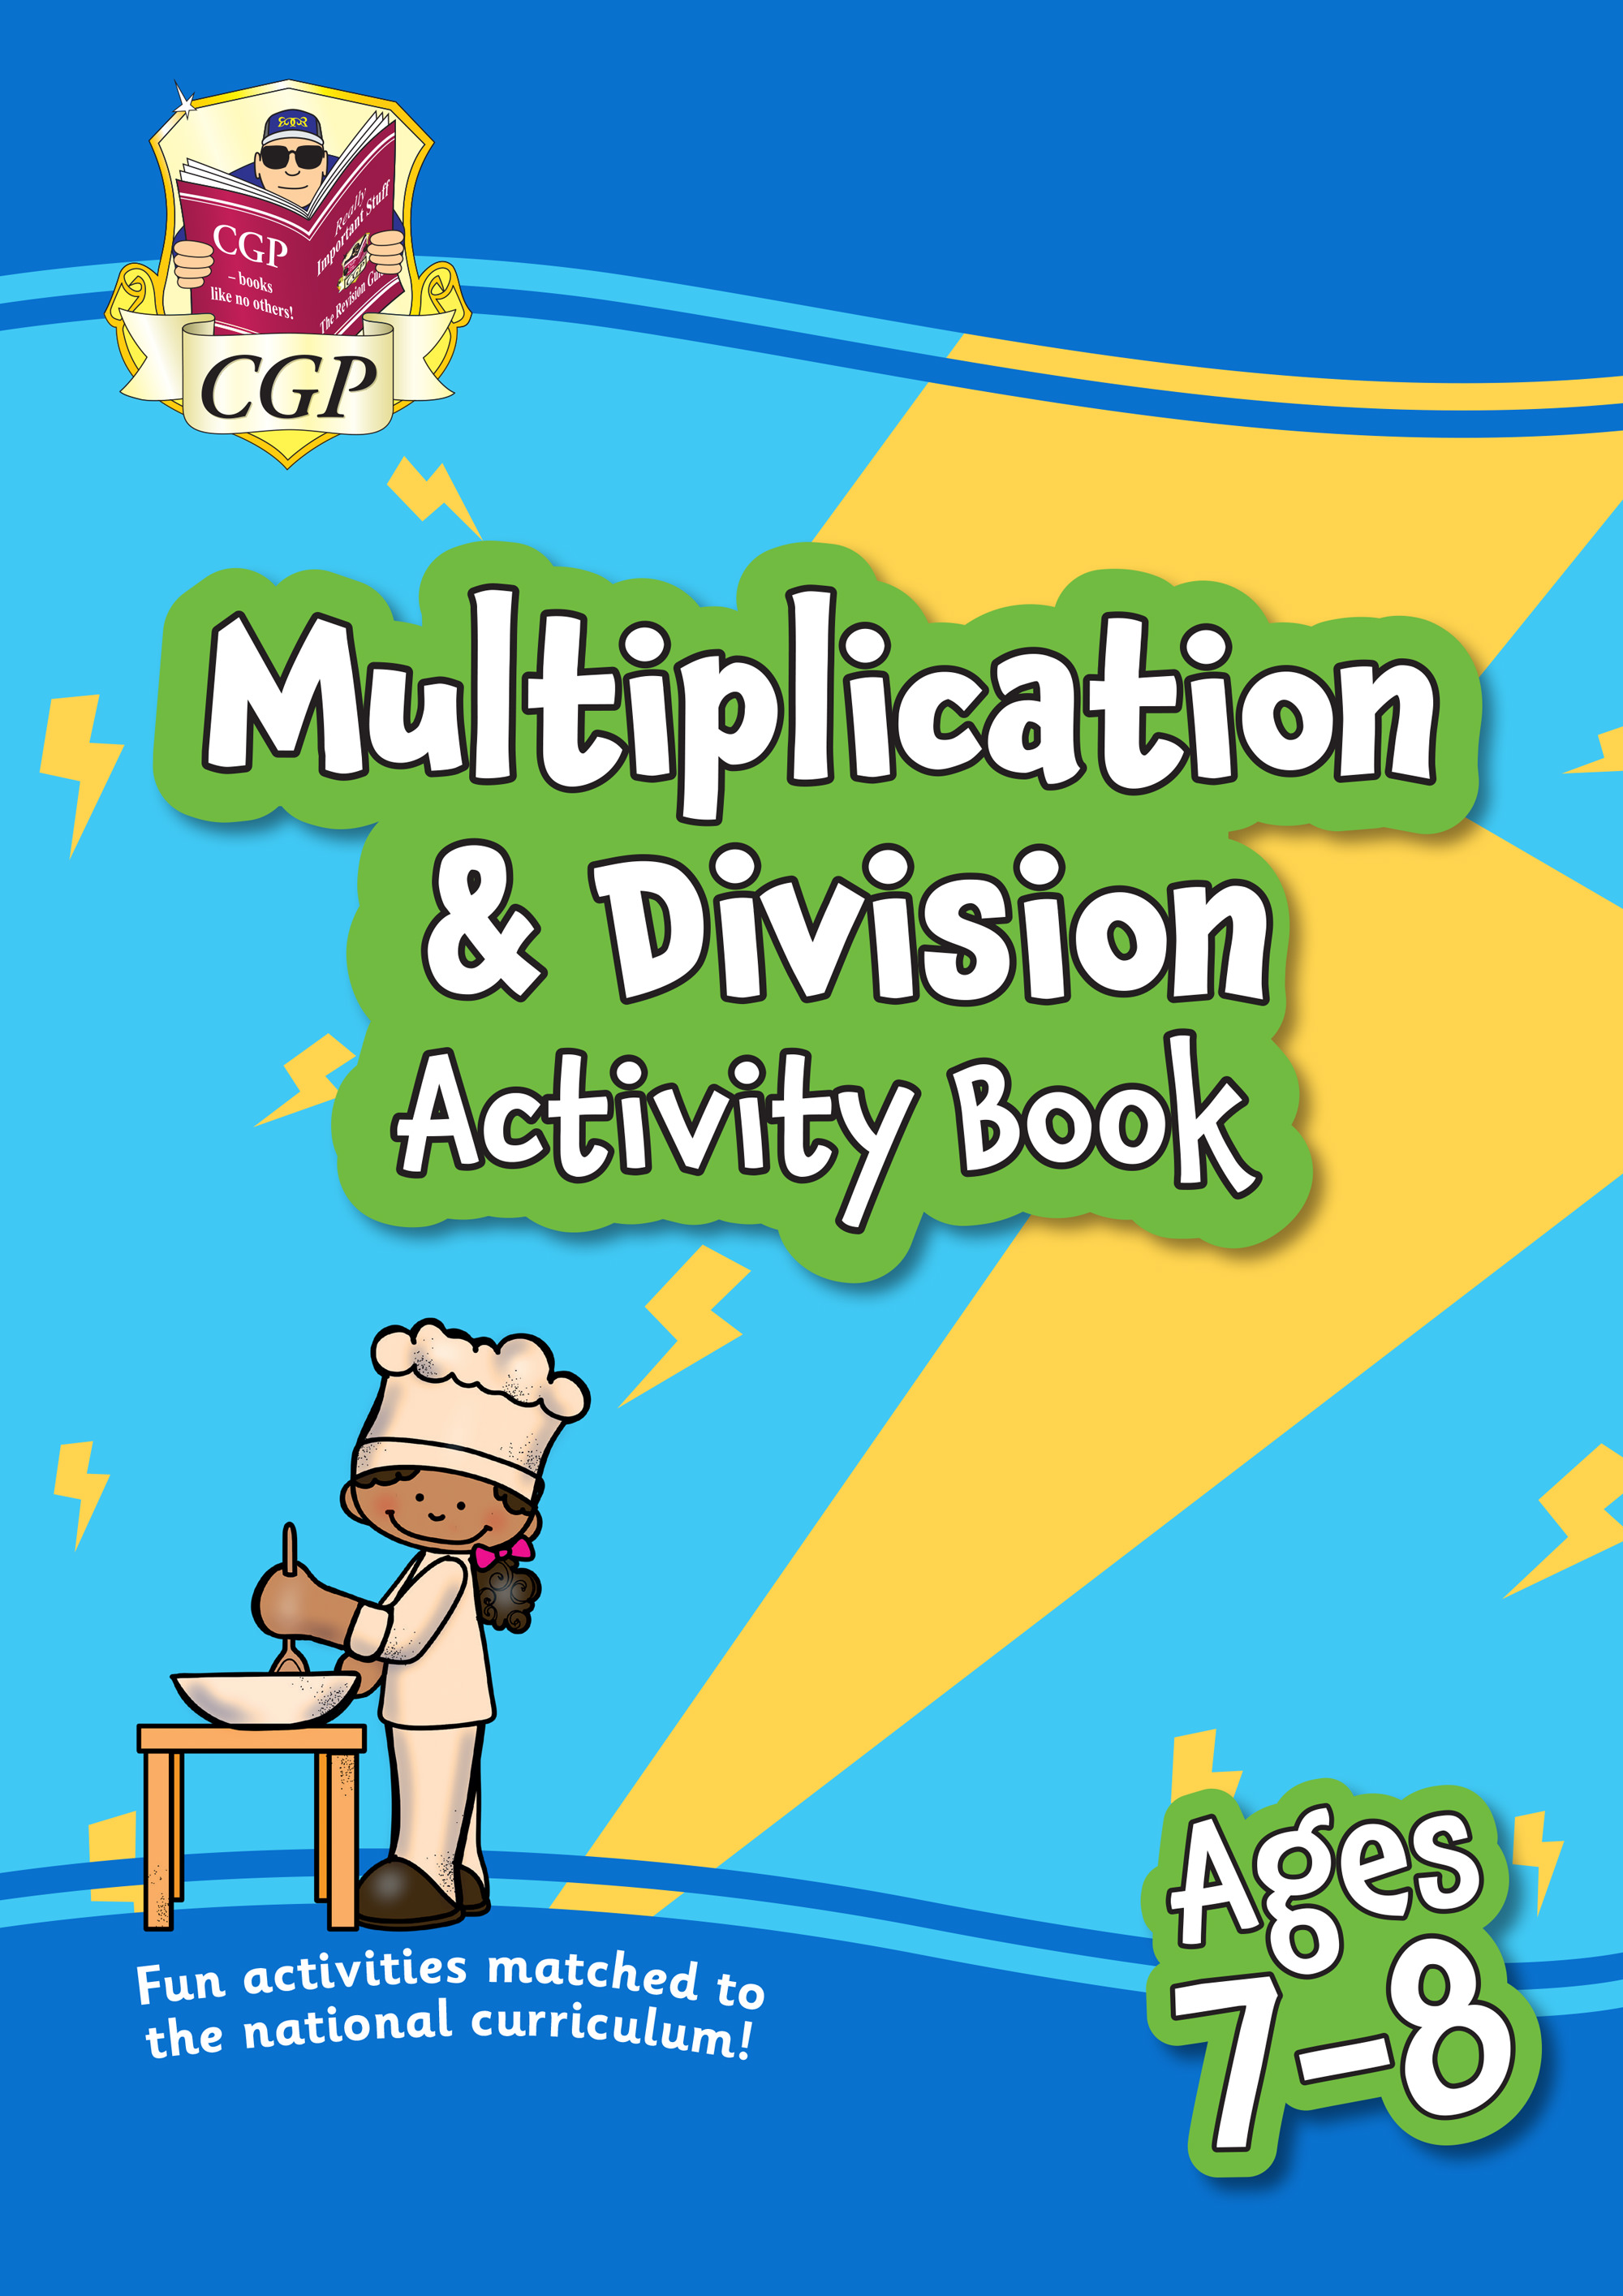 MPFMD3Q21 - New Multiplication & Division Home Learning Activity Book for Ages 7-8